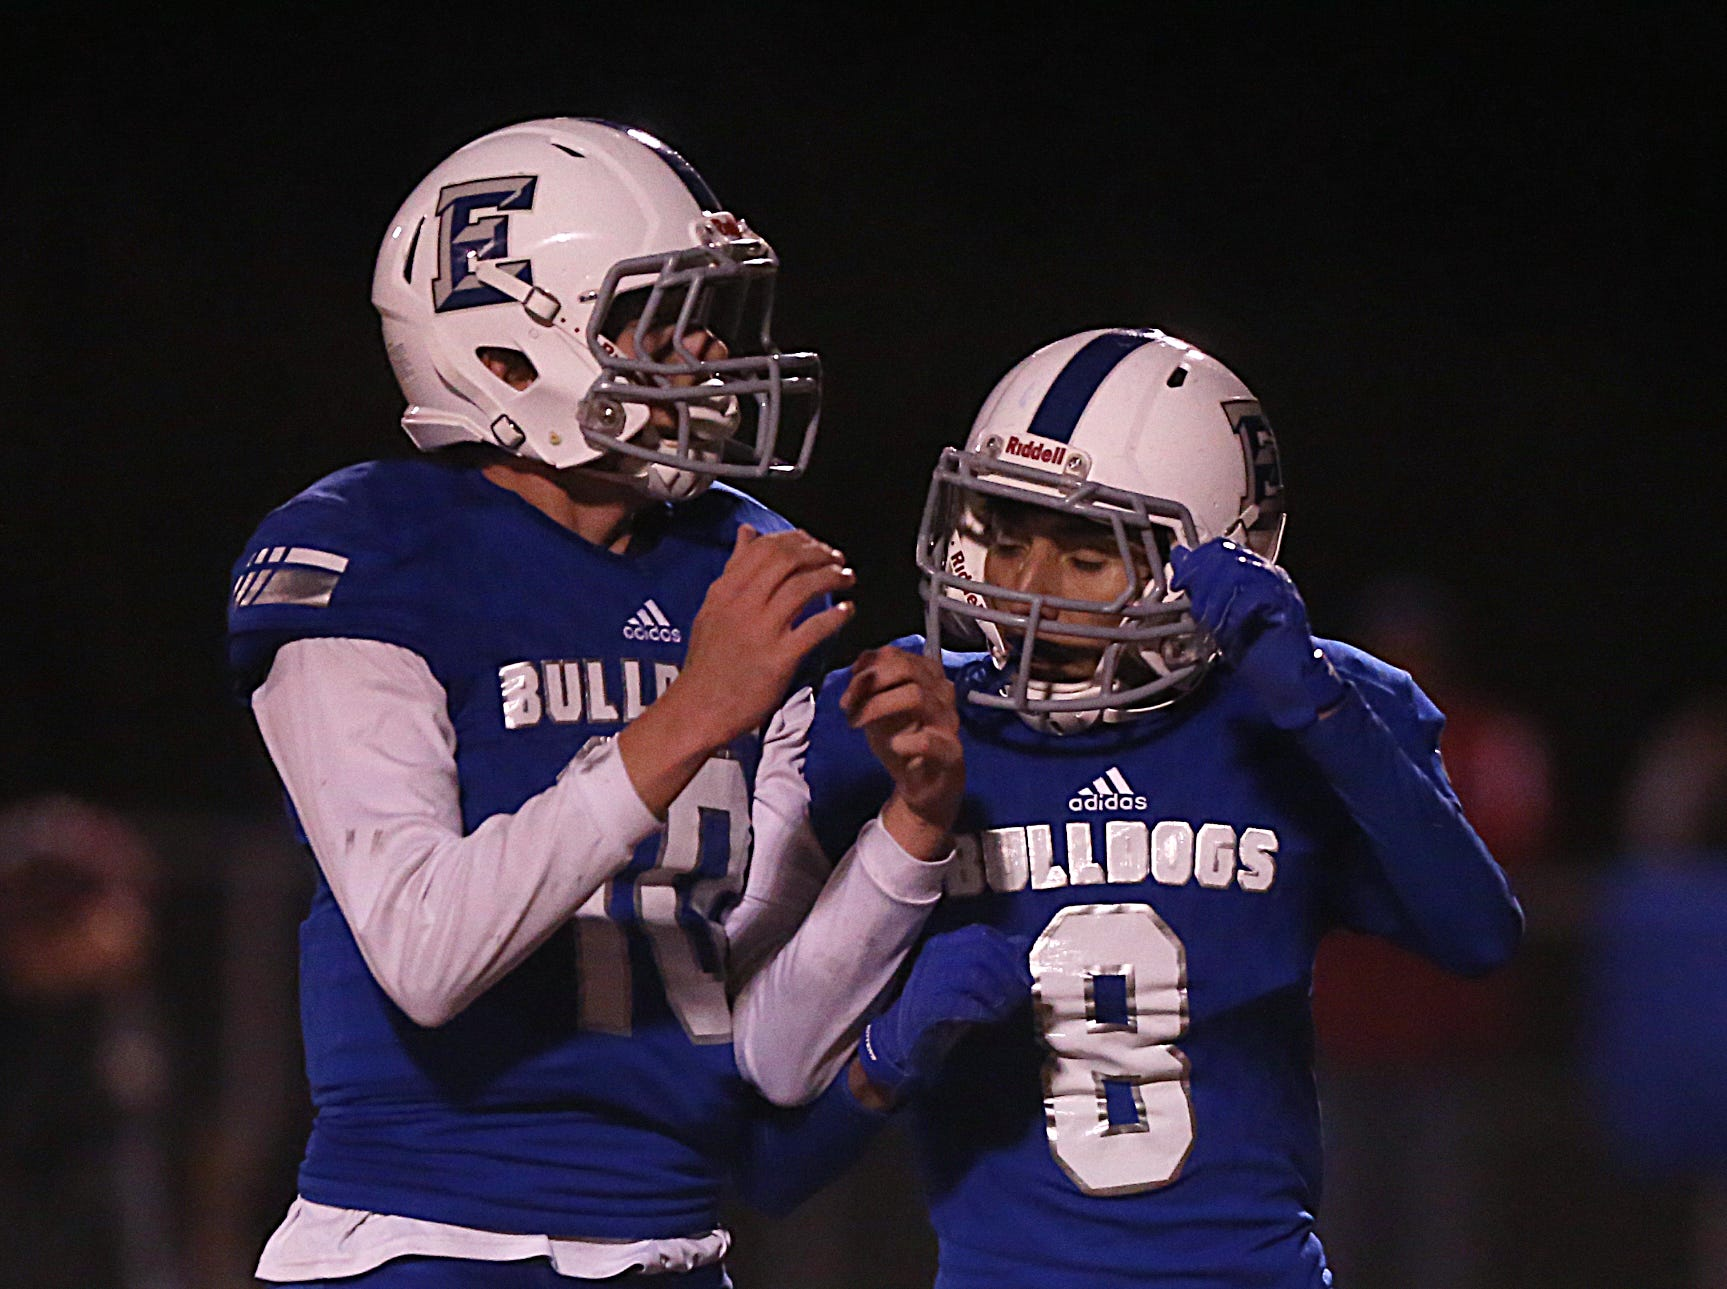 Eden's Ethan Saucedo (#8) and Hunner Rodgers (#10) Friday, Nov. 16, 2018 during their game against Gorman in Santa Anna. Eden lost to Gorman 20 to 68.